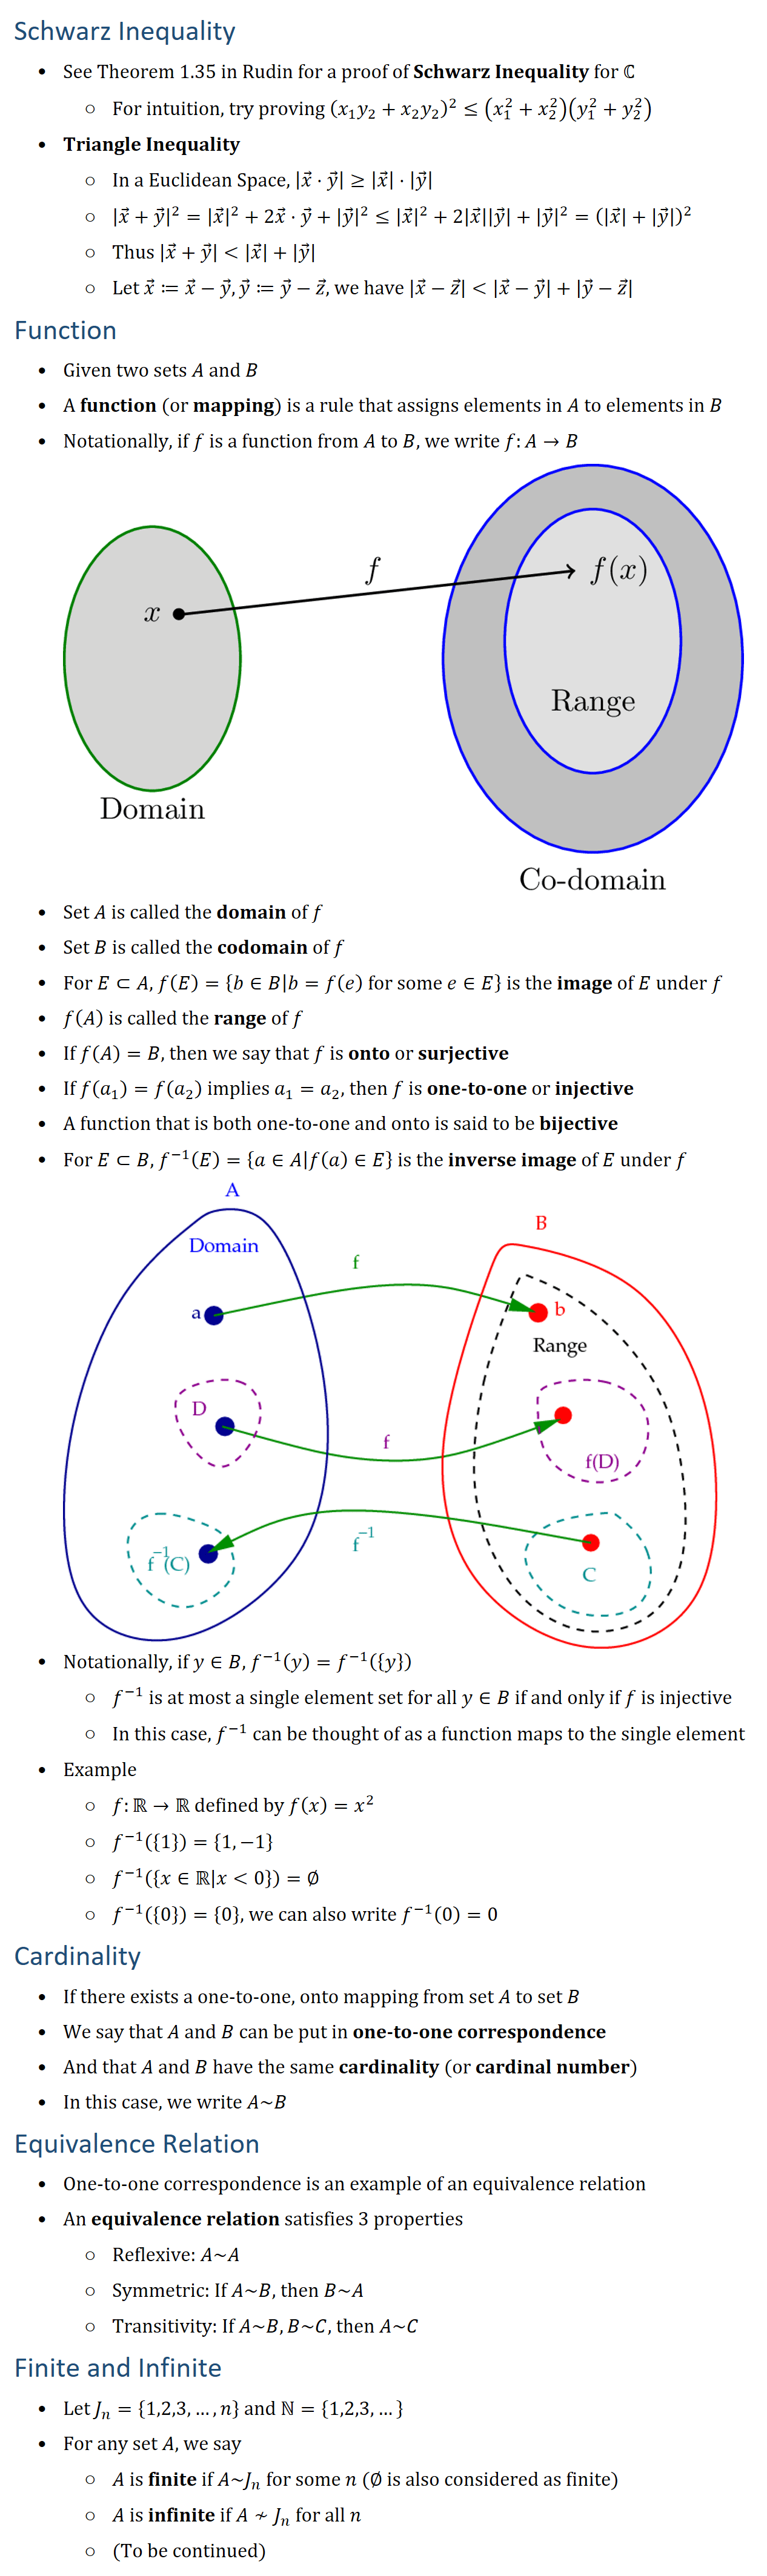 Schwarz Inequality • See Theorem 1.35 in Rudin for a proof of Schwarz Inequality for ℂ ○ For intuition, try proving (x_1 y_2+x_2 y_2 )^2≤(x_1^2+x_2^2 )(y_1^2+y_2^2 ) • Triangle Inequality ○ In a Euclidean Space, |x ⃗⋅y ⃗ |≥|x ⃗ |⋅|y ⃗ | ○ |x ⃗+y ⃗^2 |=|x ⃗ |^2+2x ⃗⋅y ⃗+|y ⃗ |^2≤|x ⃗ |^2+2|x ⃗ ||y ⃗ |+|y ⃗ |^2=(|x ⃗ |+|y ⃗ |)^2 ○ Thus |x ⃗+y ⃗ ||x ⃗ |+|y ⃗ | ○ Let x ⃗≔x ⃗−y ⃗, y ⃗≔y ⃗−z ⃗, we have |x ⃗−z ⃗ ||x ⃗−y ⃗ |+|y ⃗−z ⃗ | Function • Given two sets A and B • A function (or mapping) is a rule that assigns elements in A to elements in B • Notationally, if f is a function from A to B, we write f:A→B • Set A is called the domain of f • Set B is called the codomain of f • For E⊂A, f(E)={b∈B│b=f(e) for some e∈E} is the image of E under f • f(A) is called the range of f • If f(A)=B, then we say that f is onto or surjective • If f(a_1 )=f(a_2 ) implies a_1=a_2, then f is one-to-one or injective • A function that is both one-to-one and onto is said to be bijective • For E⊂B, f^(−1) (E)={a∈A│f(a)∈E} is the inverse image of E under f • Notationally, if y∈B, f^(−1) (y)=f^(−1) ({y}) ○ f^(−1) is at most a single element set for all y∈B if and only if f is injective ○ In this case, f^(−1) can be thought of as a function maps to the single element • Example ○ f:R→R defined by f(x)=x^2 ○ f^(−1) ({1})={1,−1} ○ f^(−1) ({x∈Rx0})=∅ ○ f^(−1) ({0})={0}, we can also write f^(−1) (0)=0 Cardinality • If there exists a one-to-one, onto mapping from set A to set B • We say that A and B can be put in one-to-one correspondence • And that A and B have the same cardinality (or cardinal number) • In this case, we write A~B Equivalence Relation • One-to-one correspondence is an example of an equivalence relation • An equivalence relation satisfies 3 properties ○ Reflexive: A~A ○ Symmetric: If A~B, then B~A ○ Transitivity: If A~B, B~C, then A~C Finite and Countable • Let J_n={1,2,3,…,n} and N={1,2,3,…} • For any set A, we say ○ A is finite if A~J_n for some n (∅~J_0 so ∅ is finite) ○ A is infini